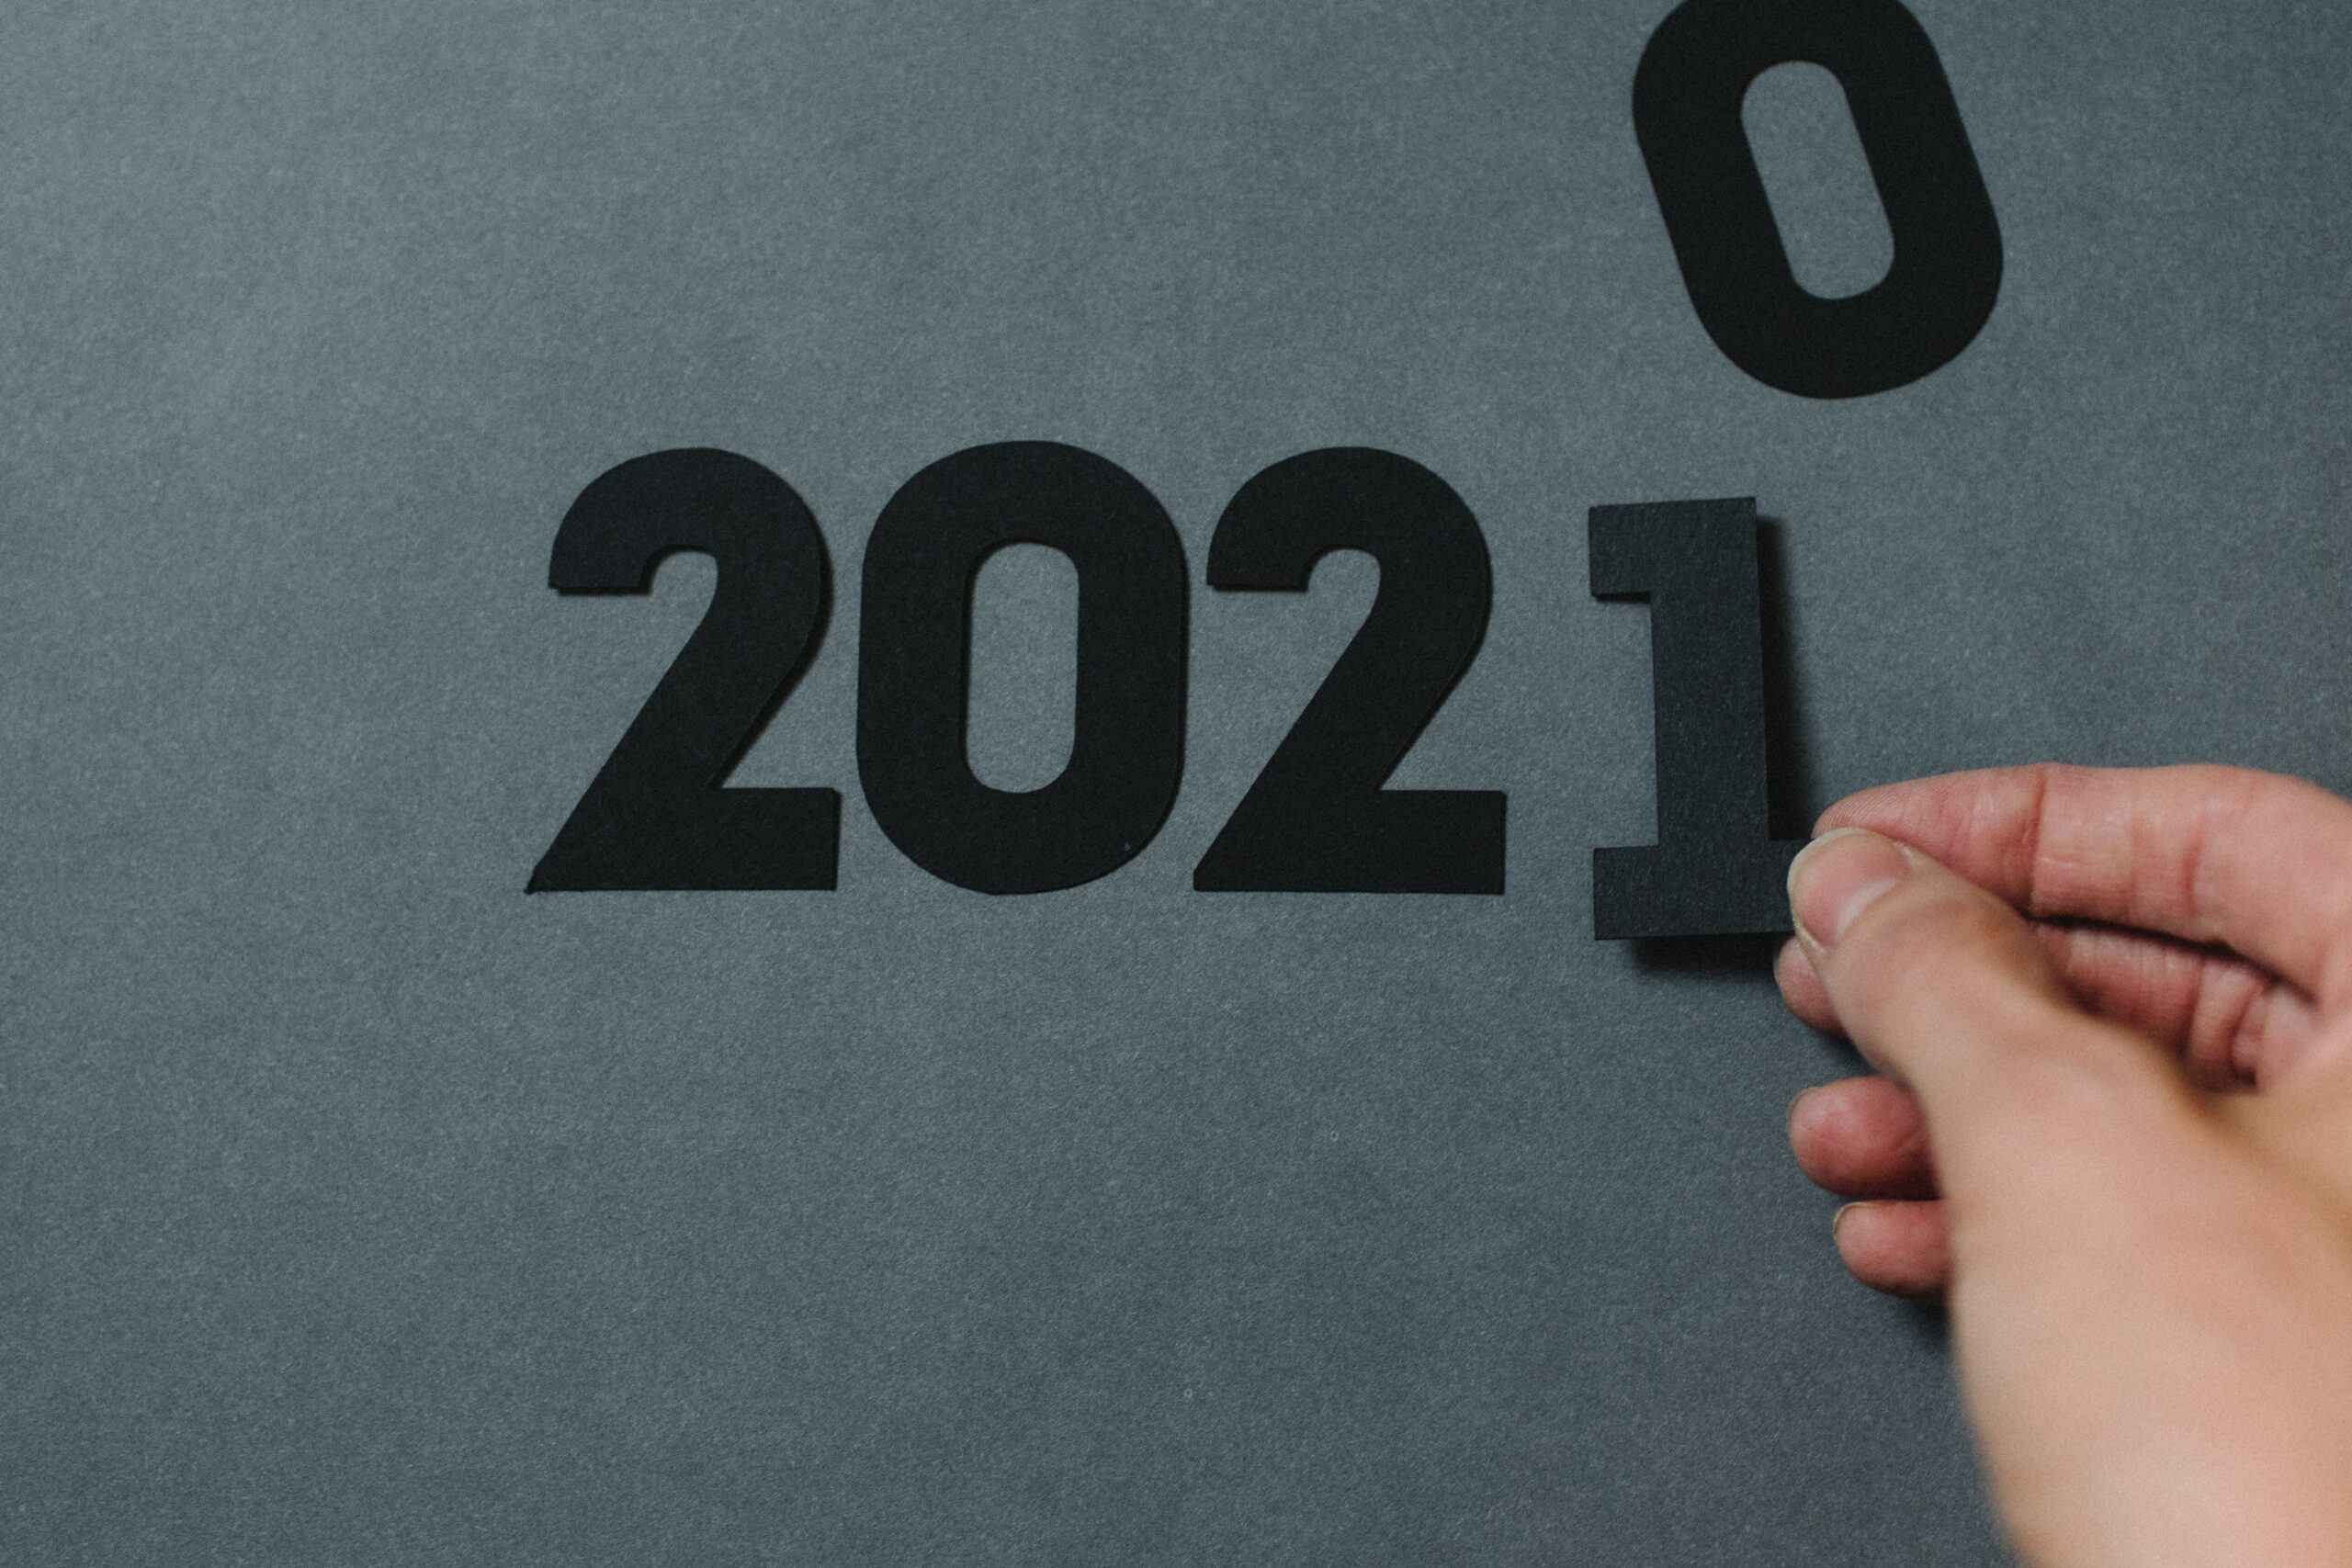 Business Payroll and Taxes for 2021